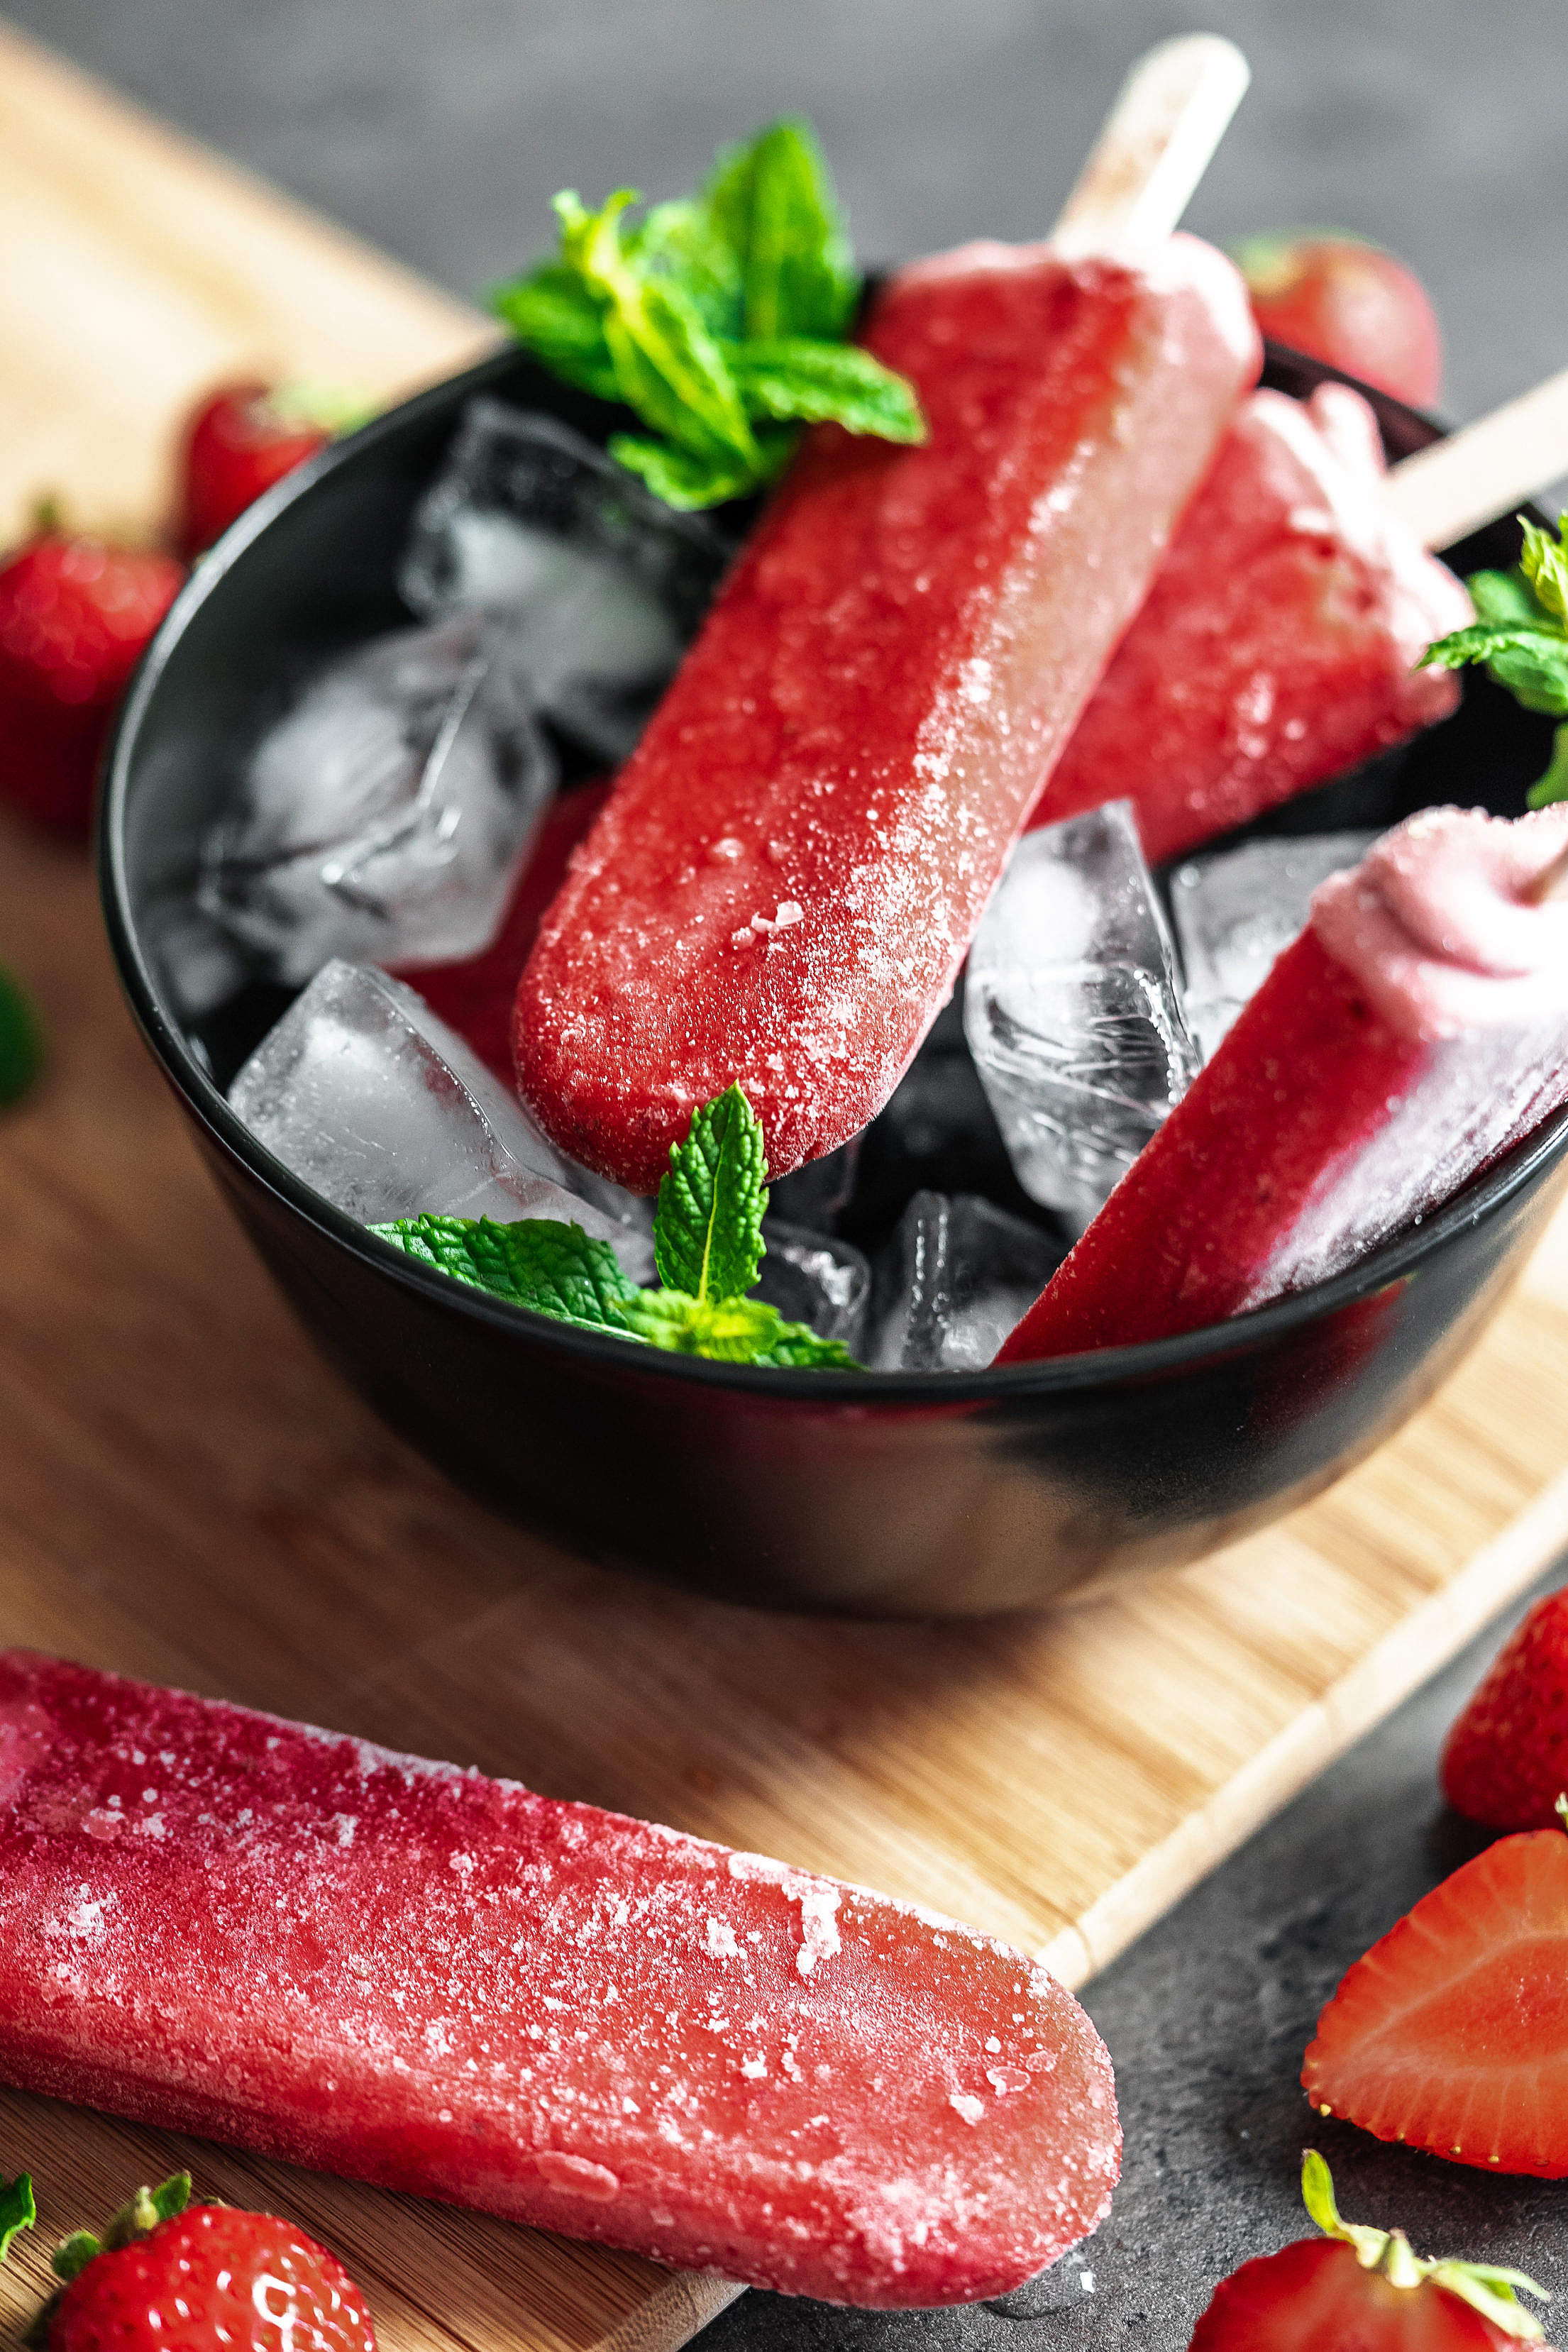 Delicious Strawberry Popsicles on a Wooden Board Free Stock Photo